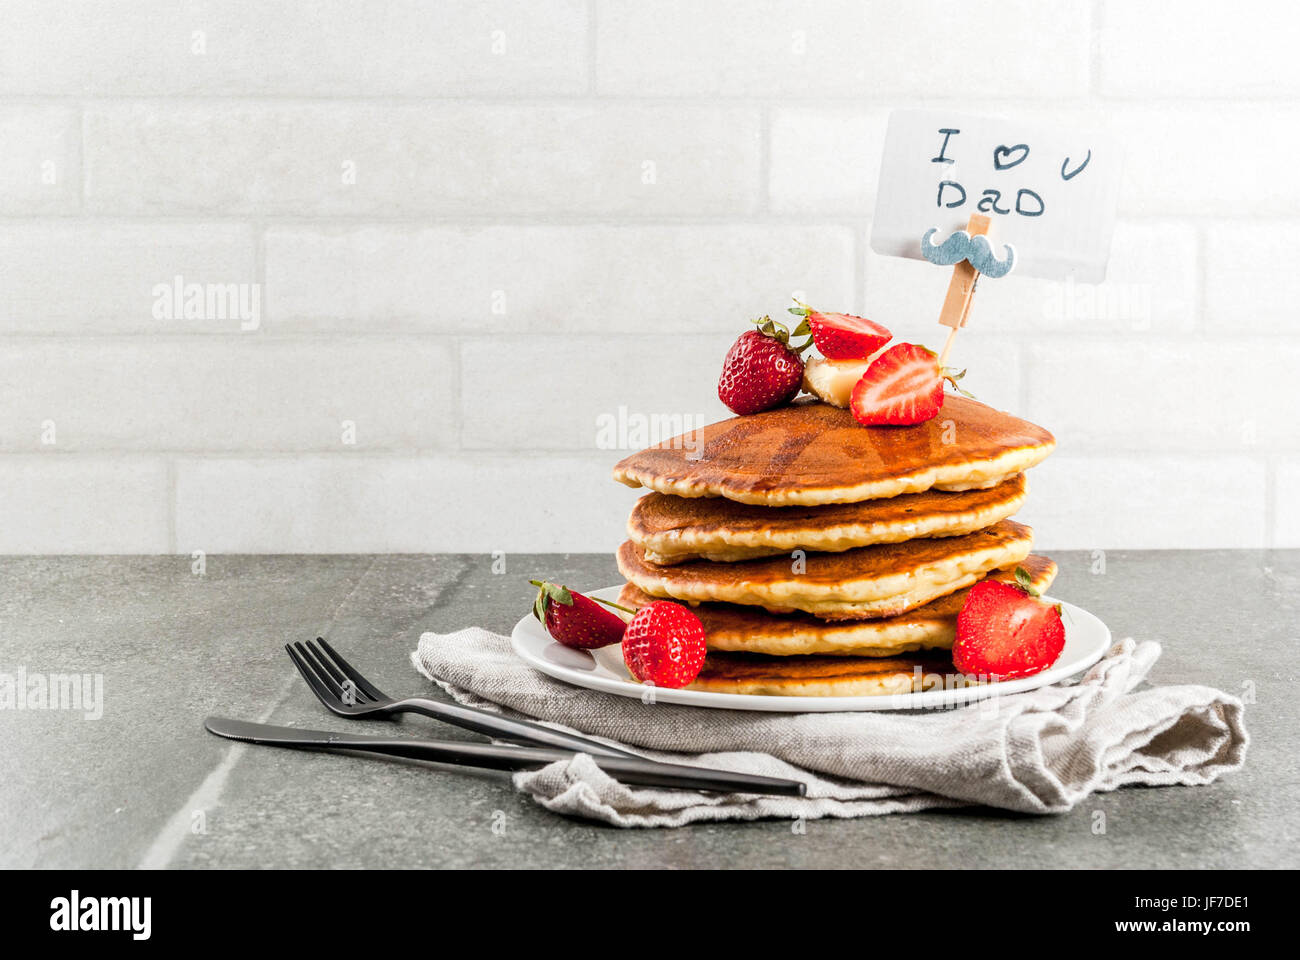 Celebrating Father's Day. Breakfast. The idea for hearty and delicious holiday breakfast: pancakes with butter, - Stock Image